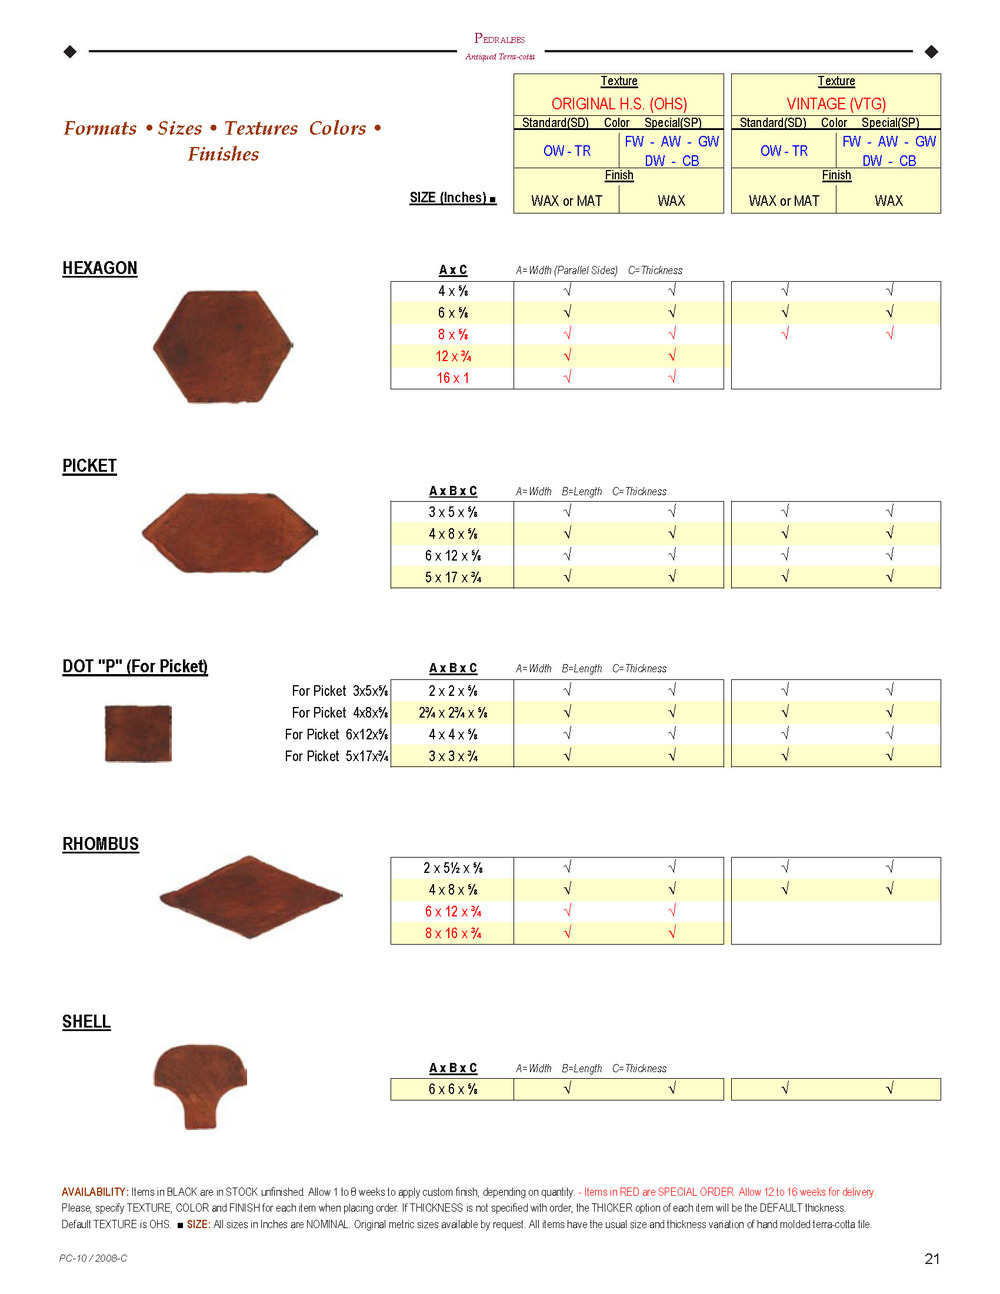 03-Formats+Sizes_Page_05.jpg